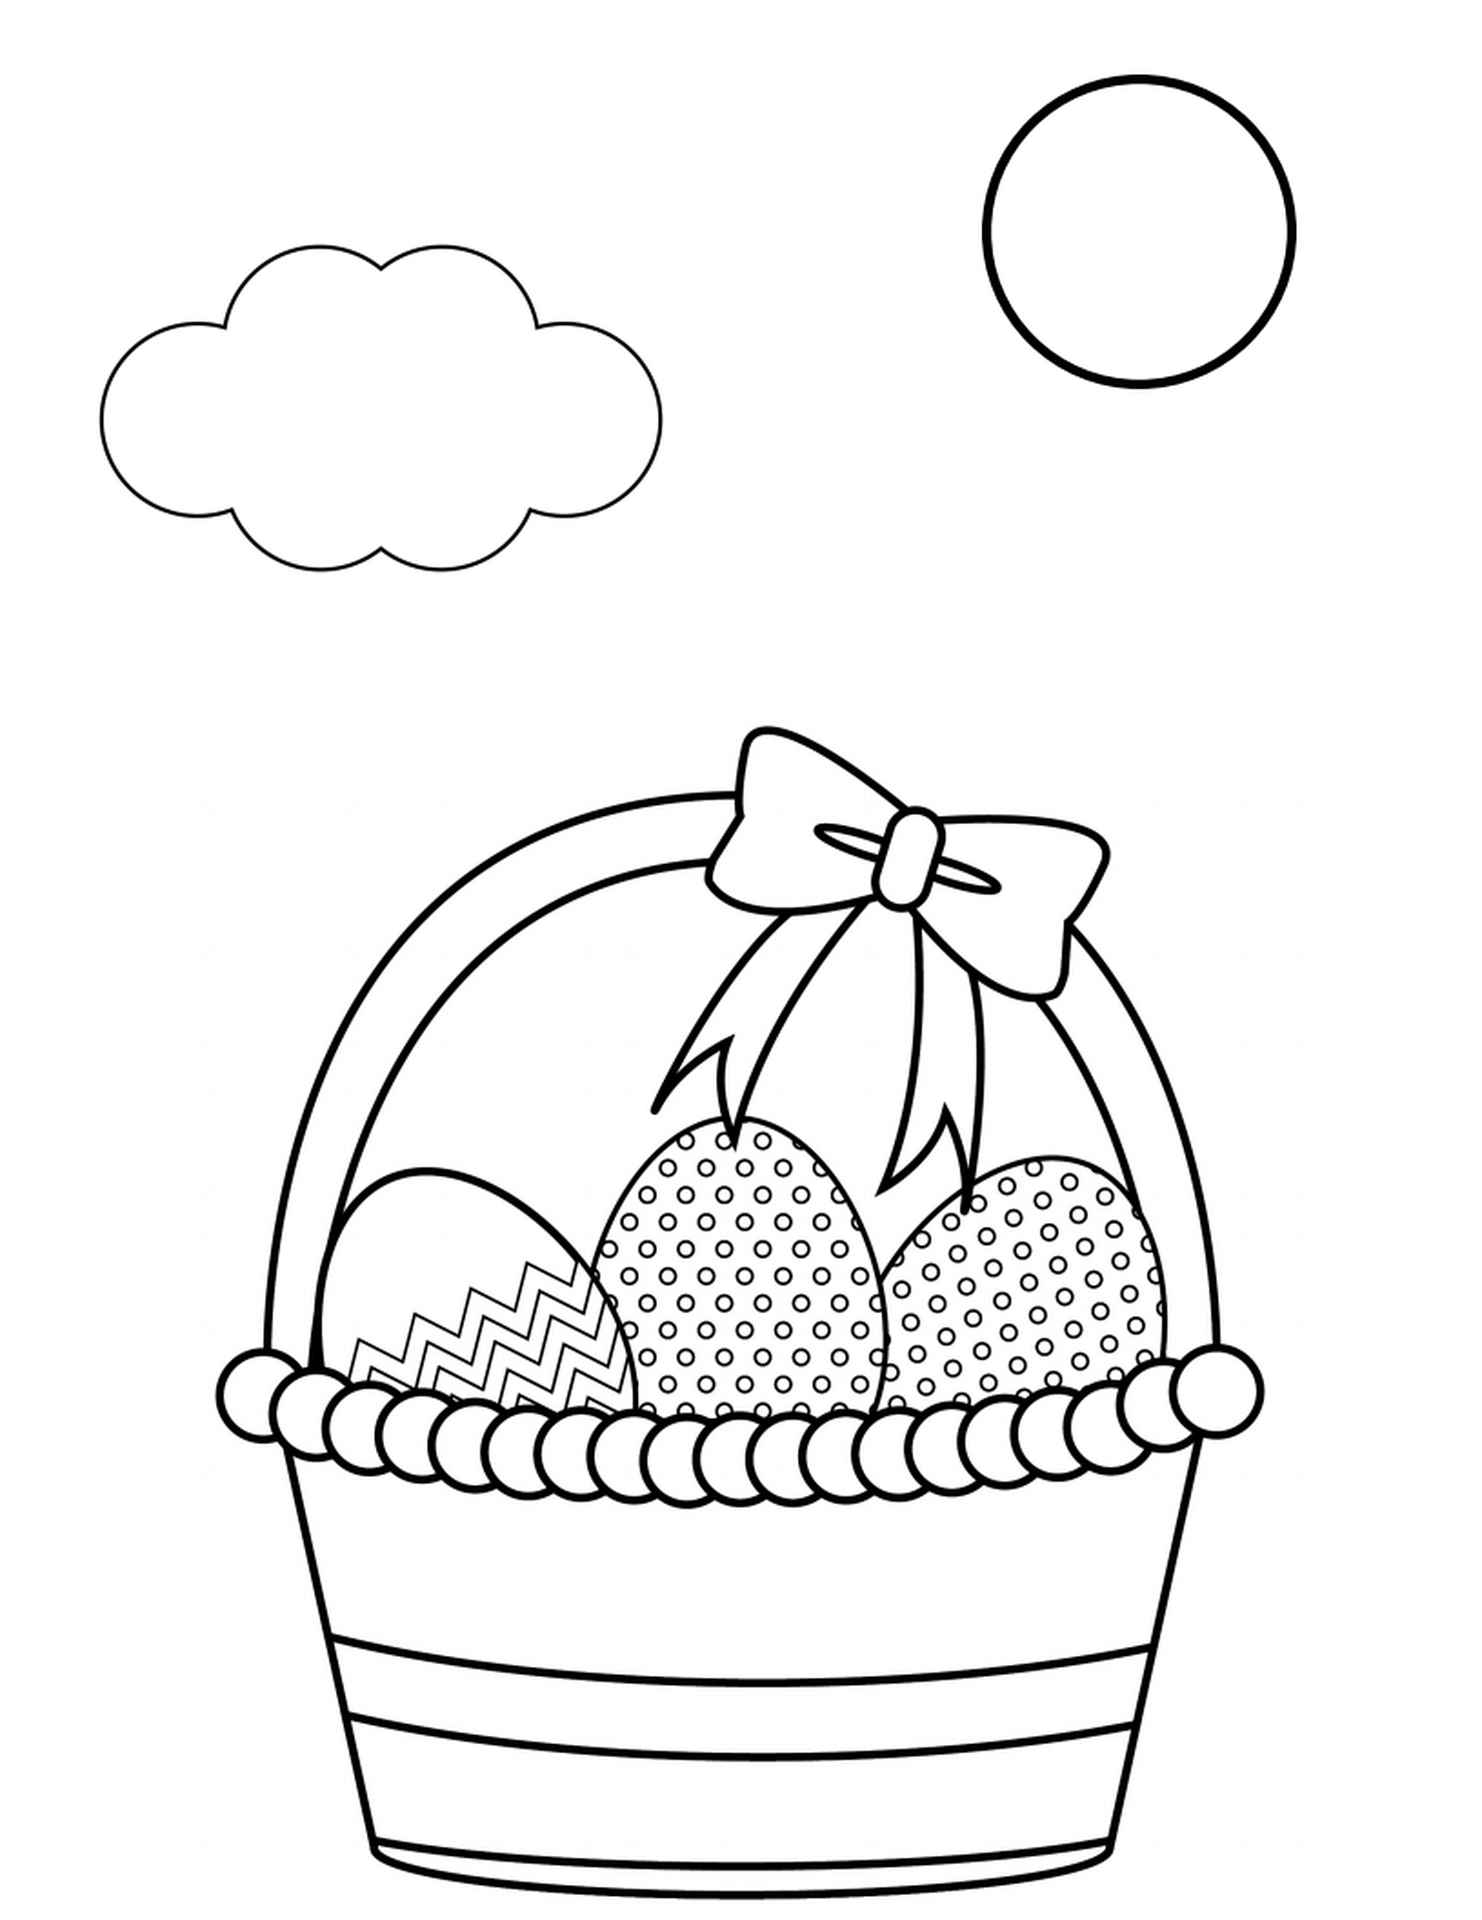 Easter Basket Coloring Sheet For Kids